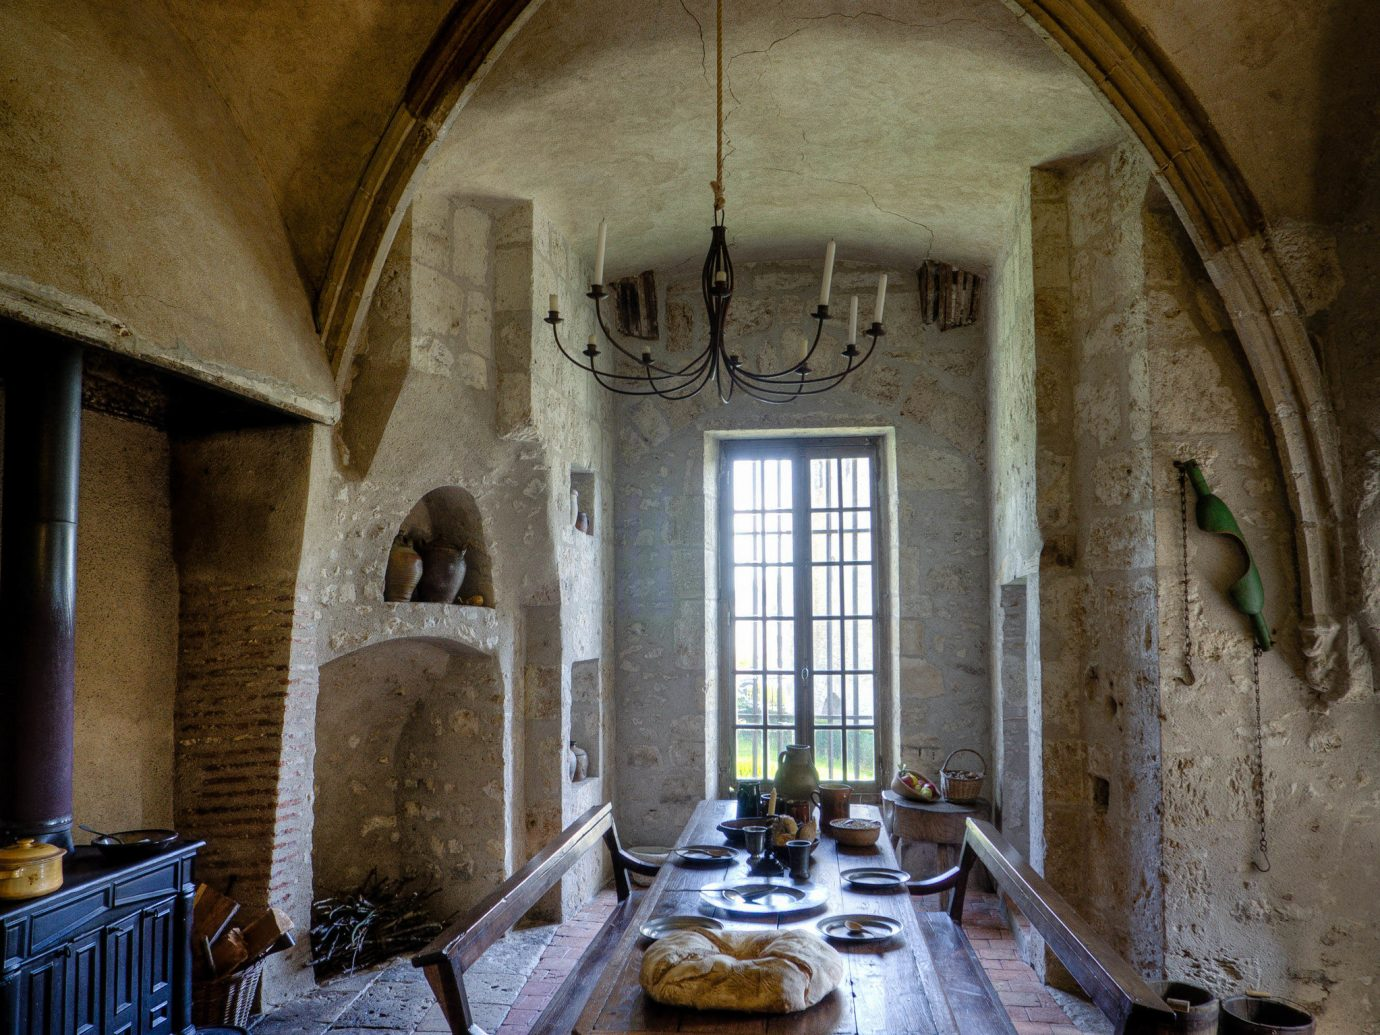 Budget indoor wall building stone room Architecture estate house ancient history Church interior design chapel arch place of worship old mansion history ceiling furniture